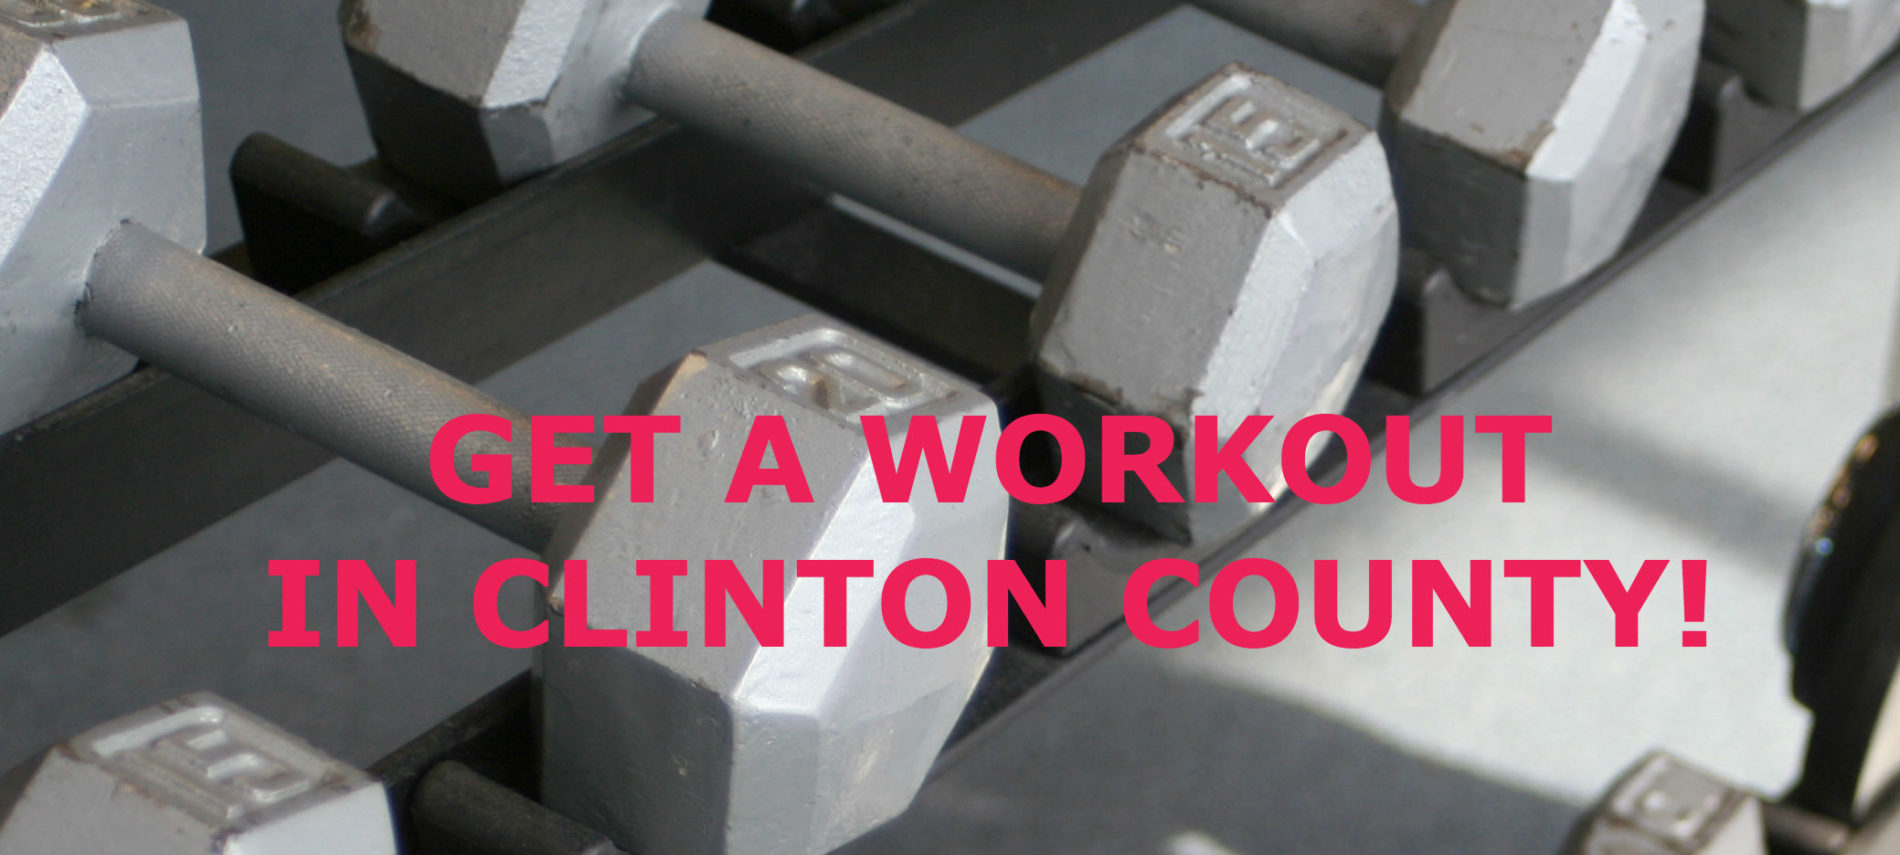 "Photo of dumbbells with title, ""Get a workout in Clinton County!"""